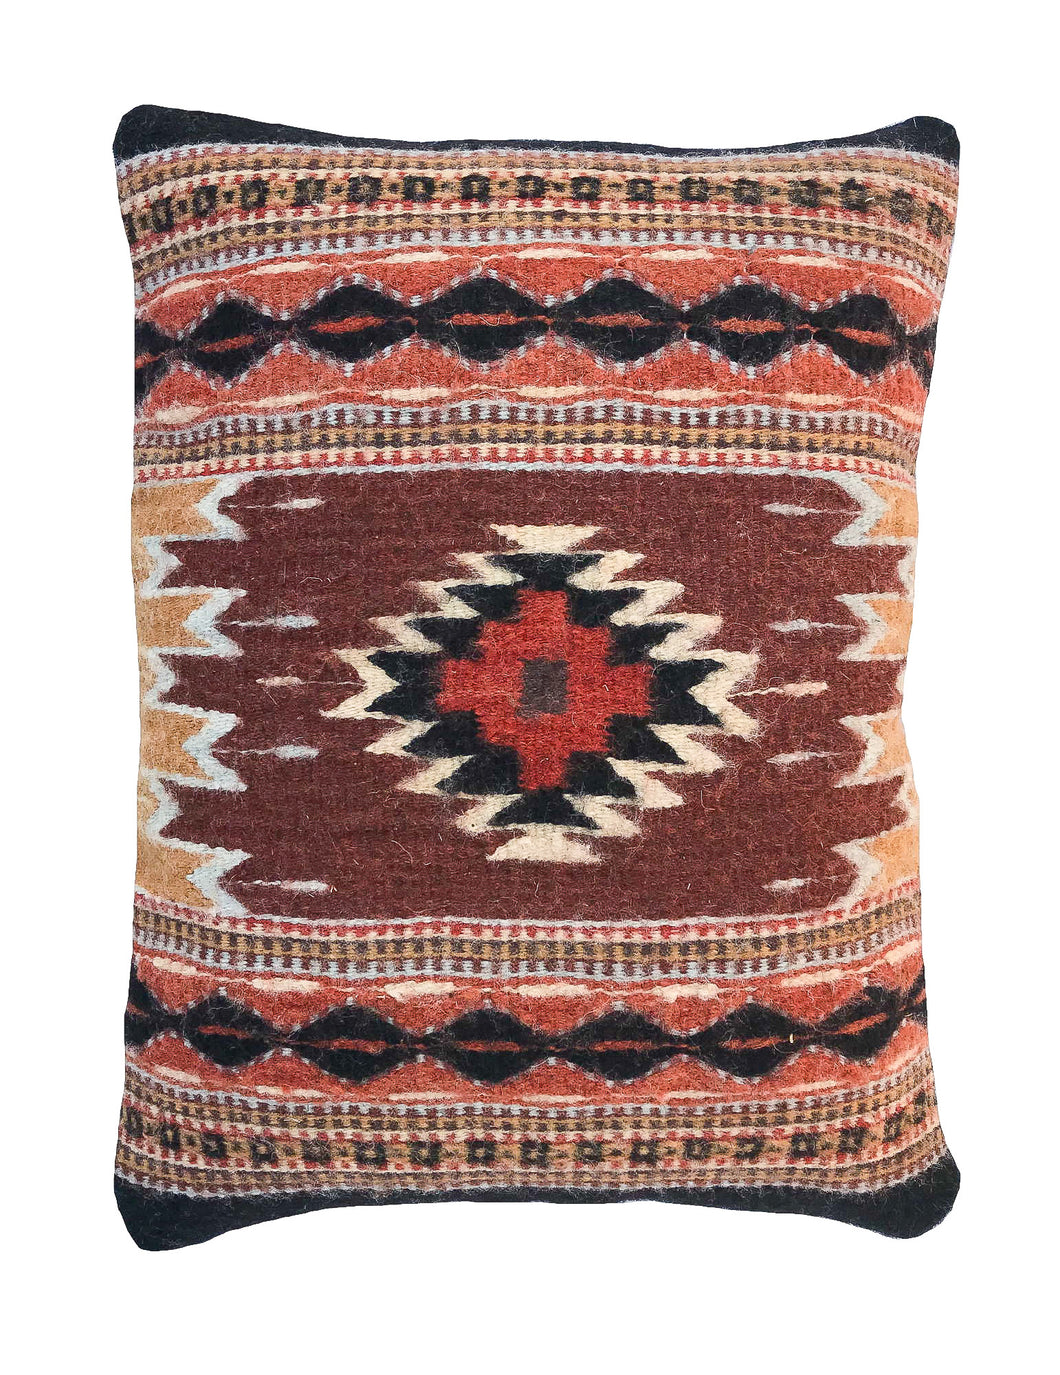 Handwoven Zapotec Indian Pillow - Saltillo Negro Wool Oaxacan Textile